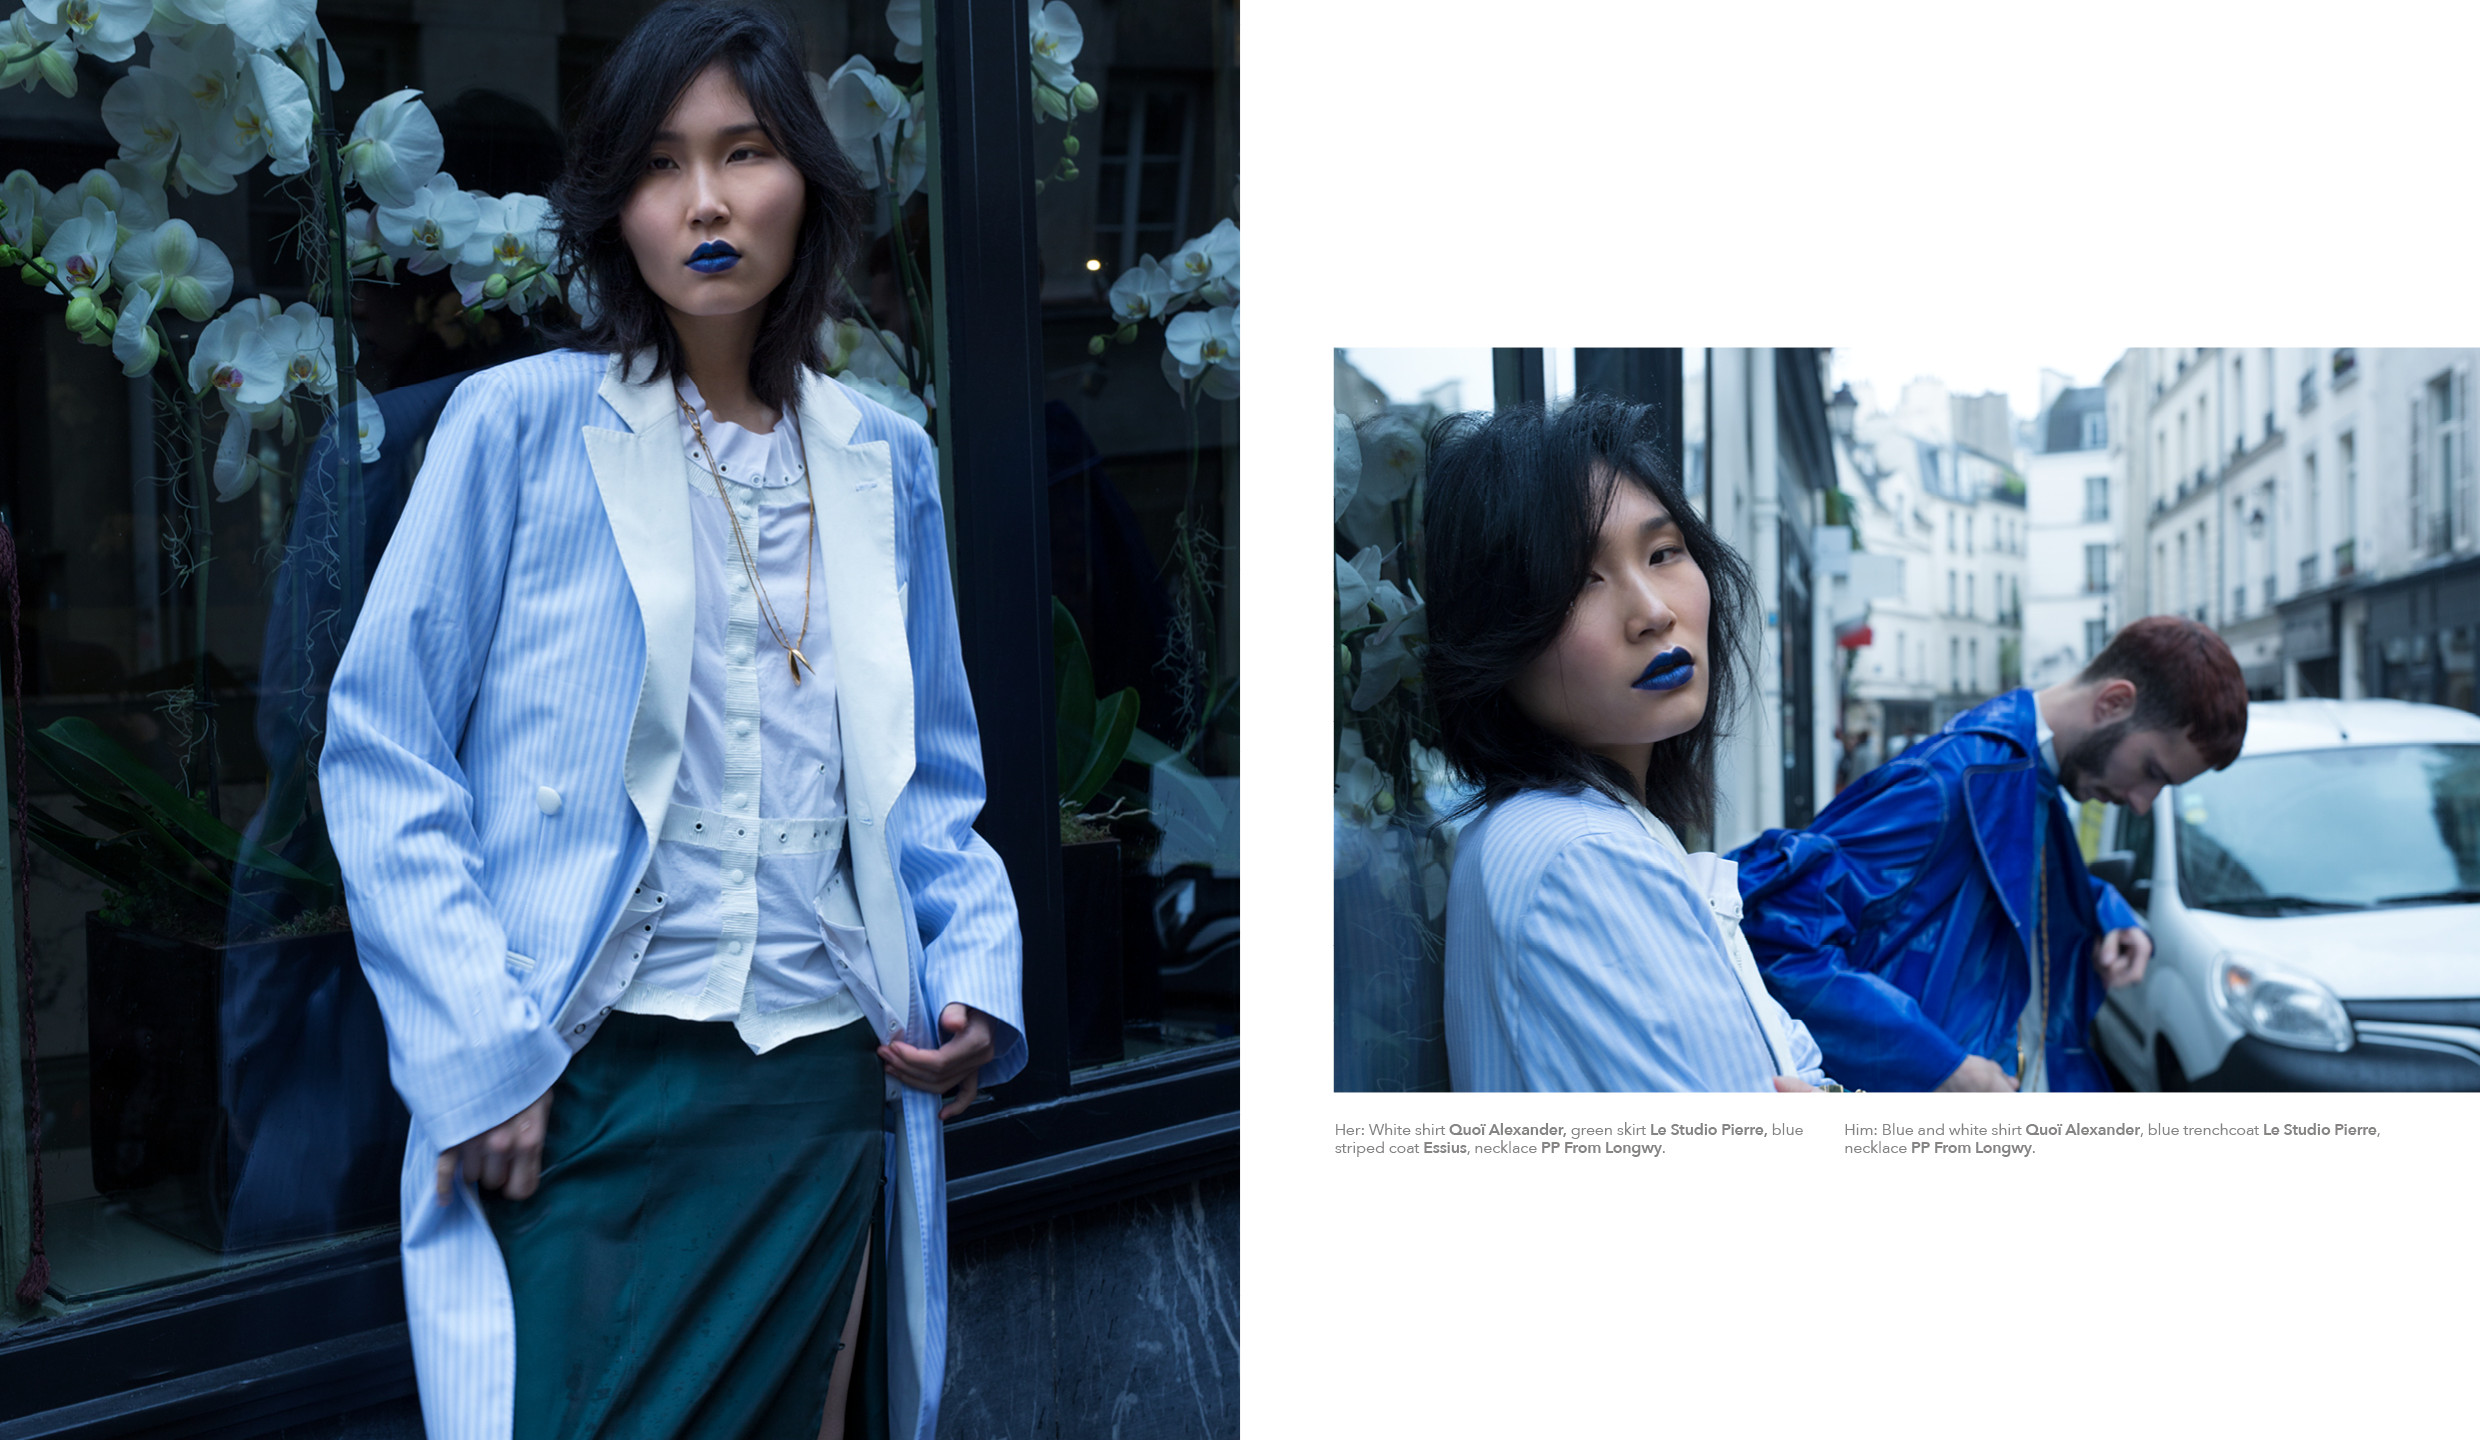 Her: White shirt Quoï Alexander, green skirt Le Studio Pierre, blue striped coat Essius, necklace PP From Longwy. Him: Blue and white shirt Quoï Alexander, blue trenchcoat Le Studio Pierre, necklace PP From Longwy.